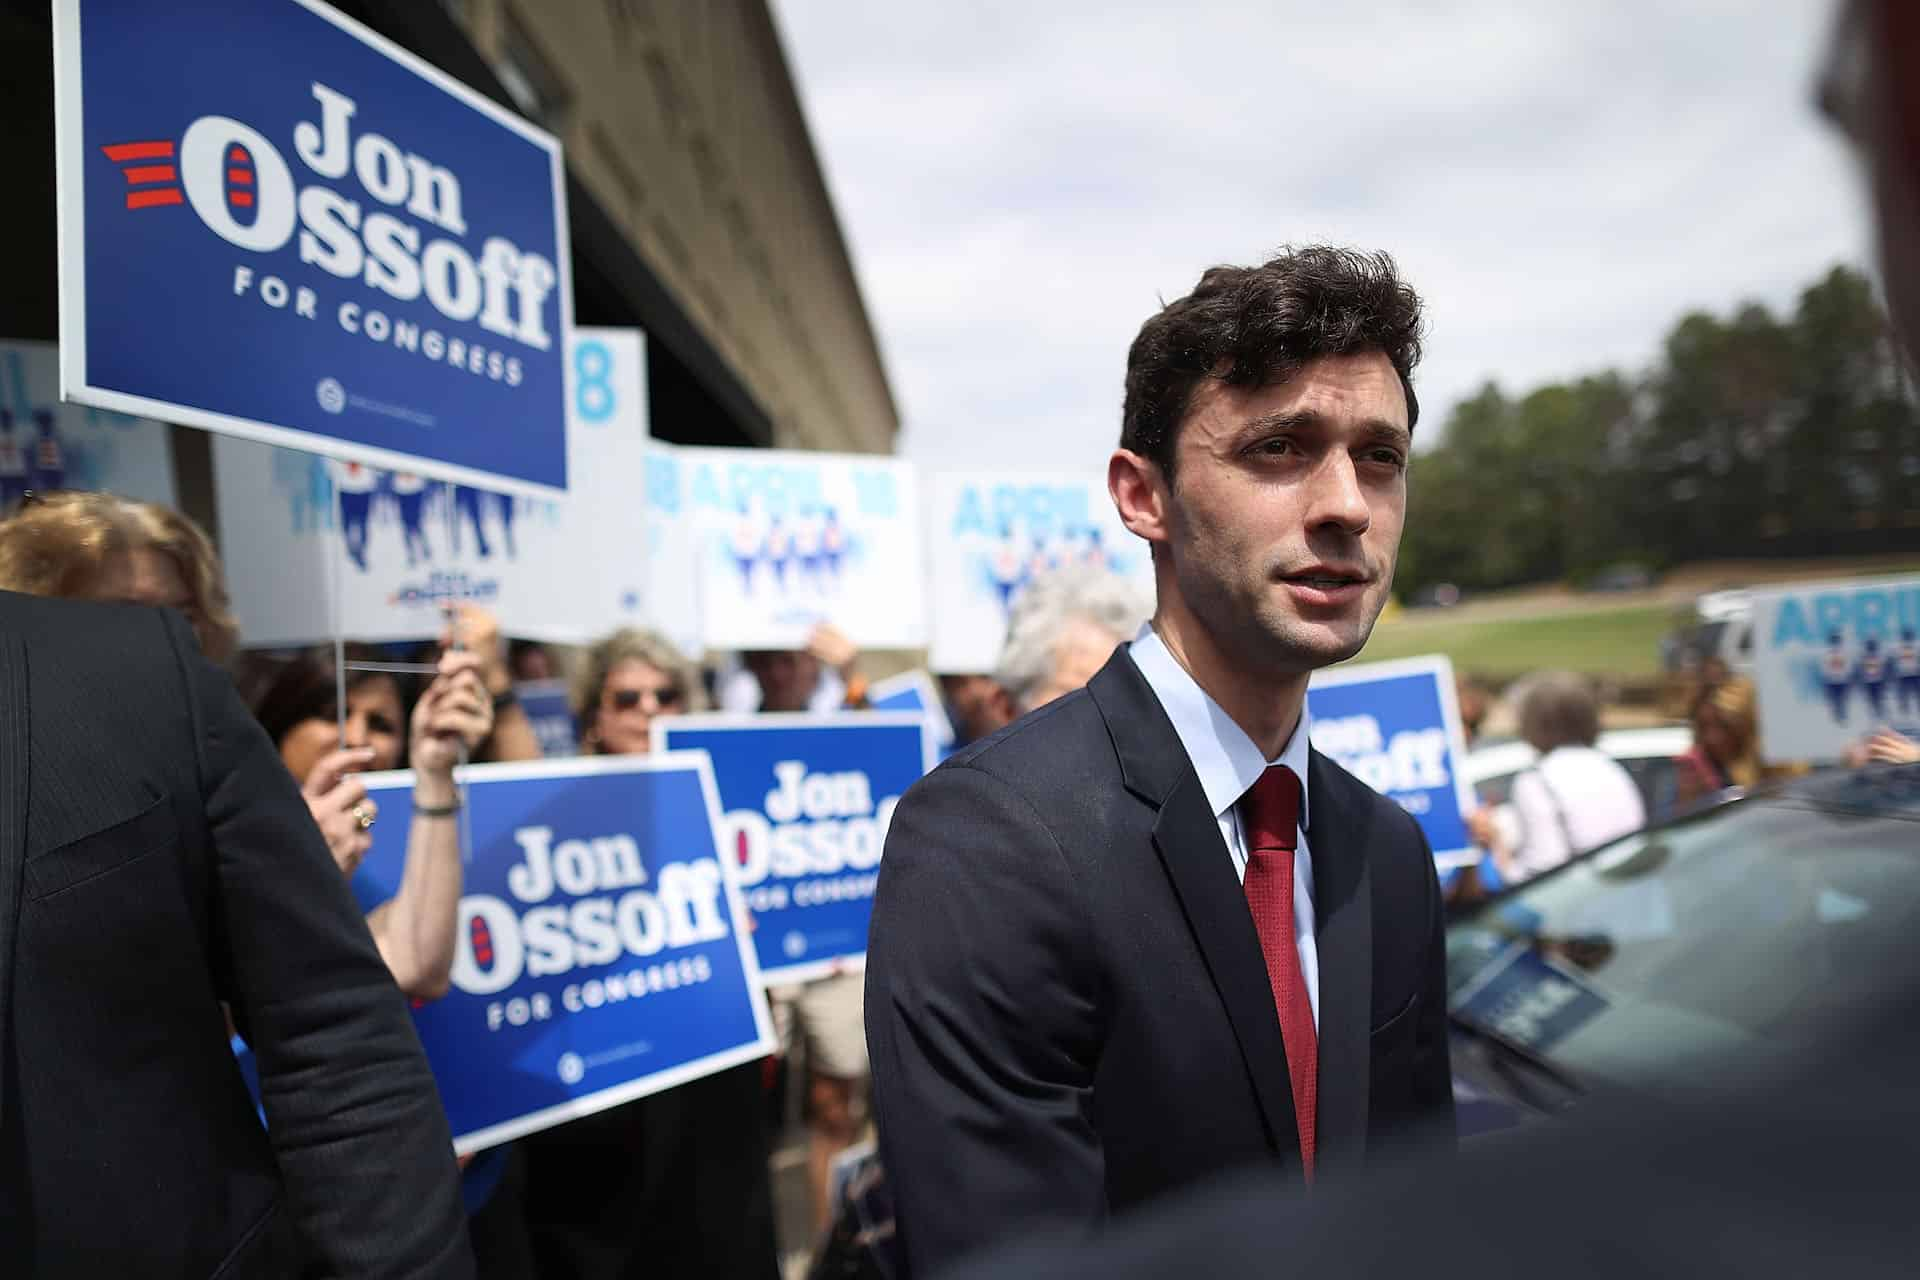 The most expensive House race in history  - Democrats spent $30 million to lose Georgia's special election